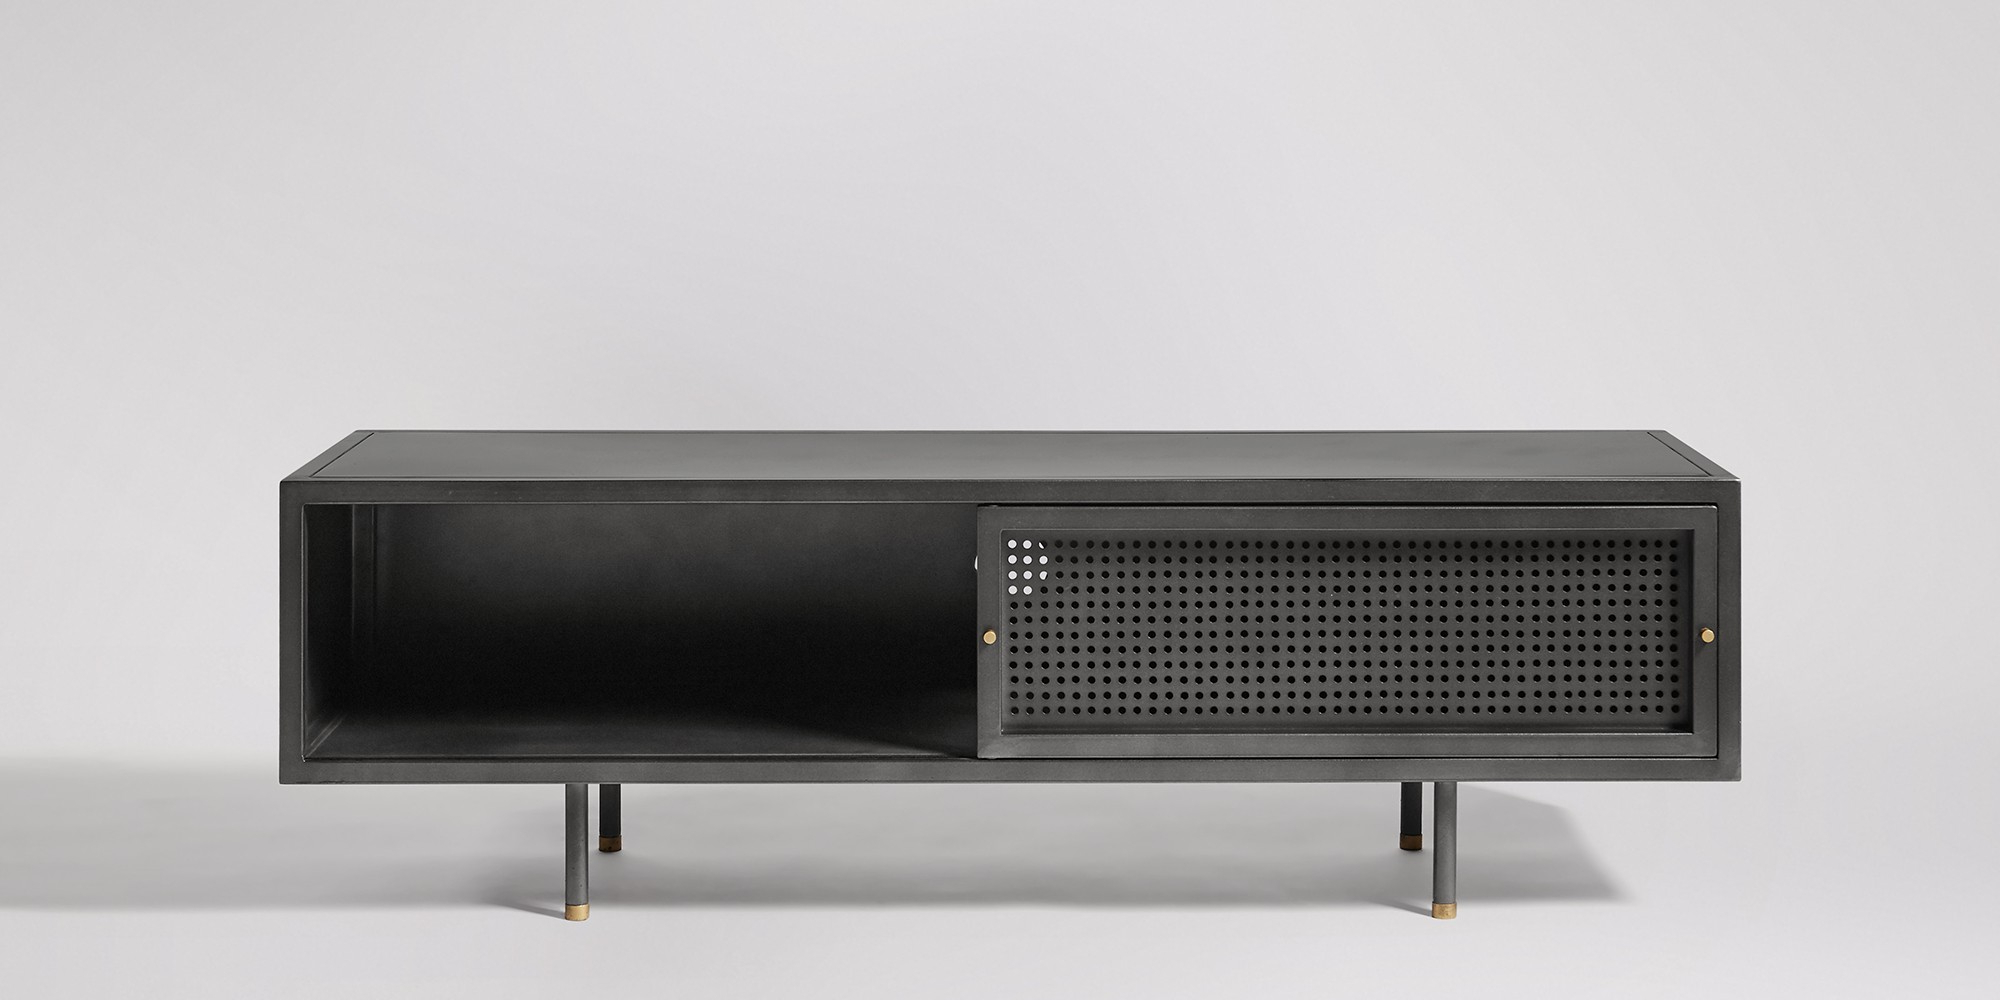 Sheffield Gunmetal & Brass Media Unit | Swoon Editions Inside Gunmetal Perforated Brass Media Console Tables (Gallery 8 of 20)